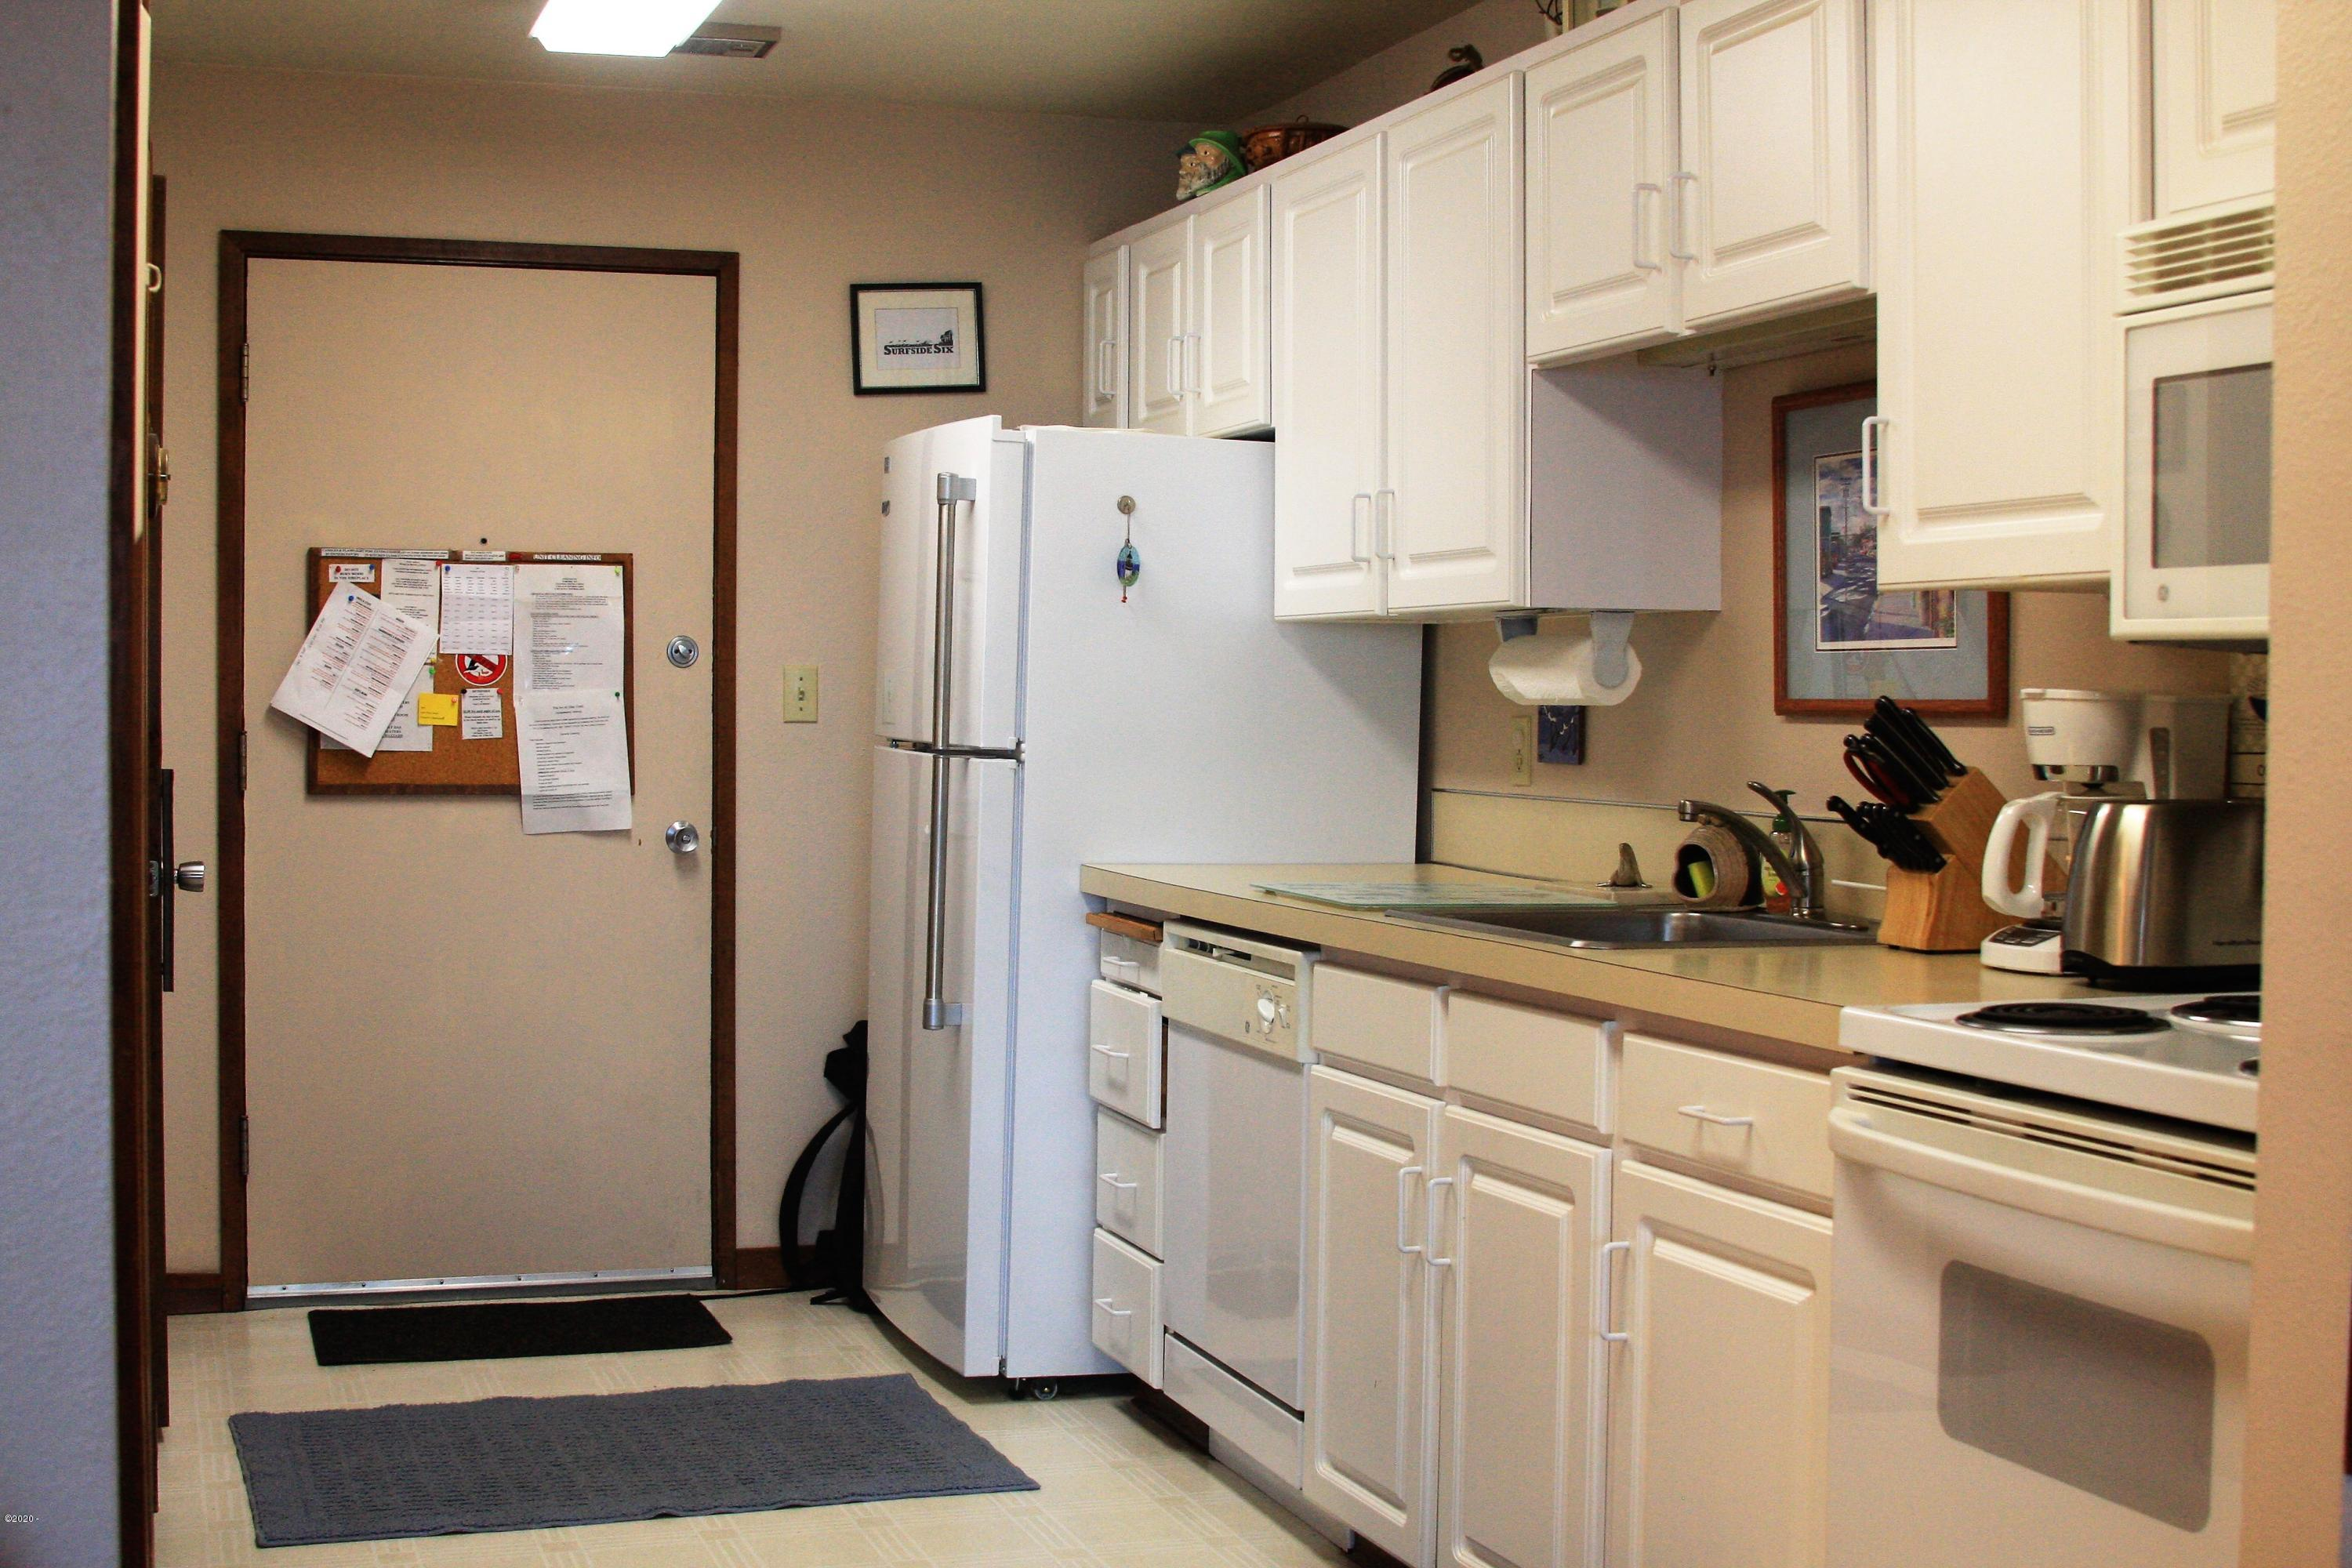 301 Otter Crest Dr, 318-319 1/6 SHARE, Otter Rock, OR 97369 - Kitchen